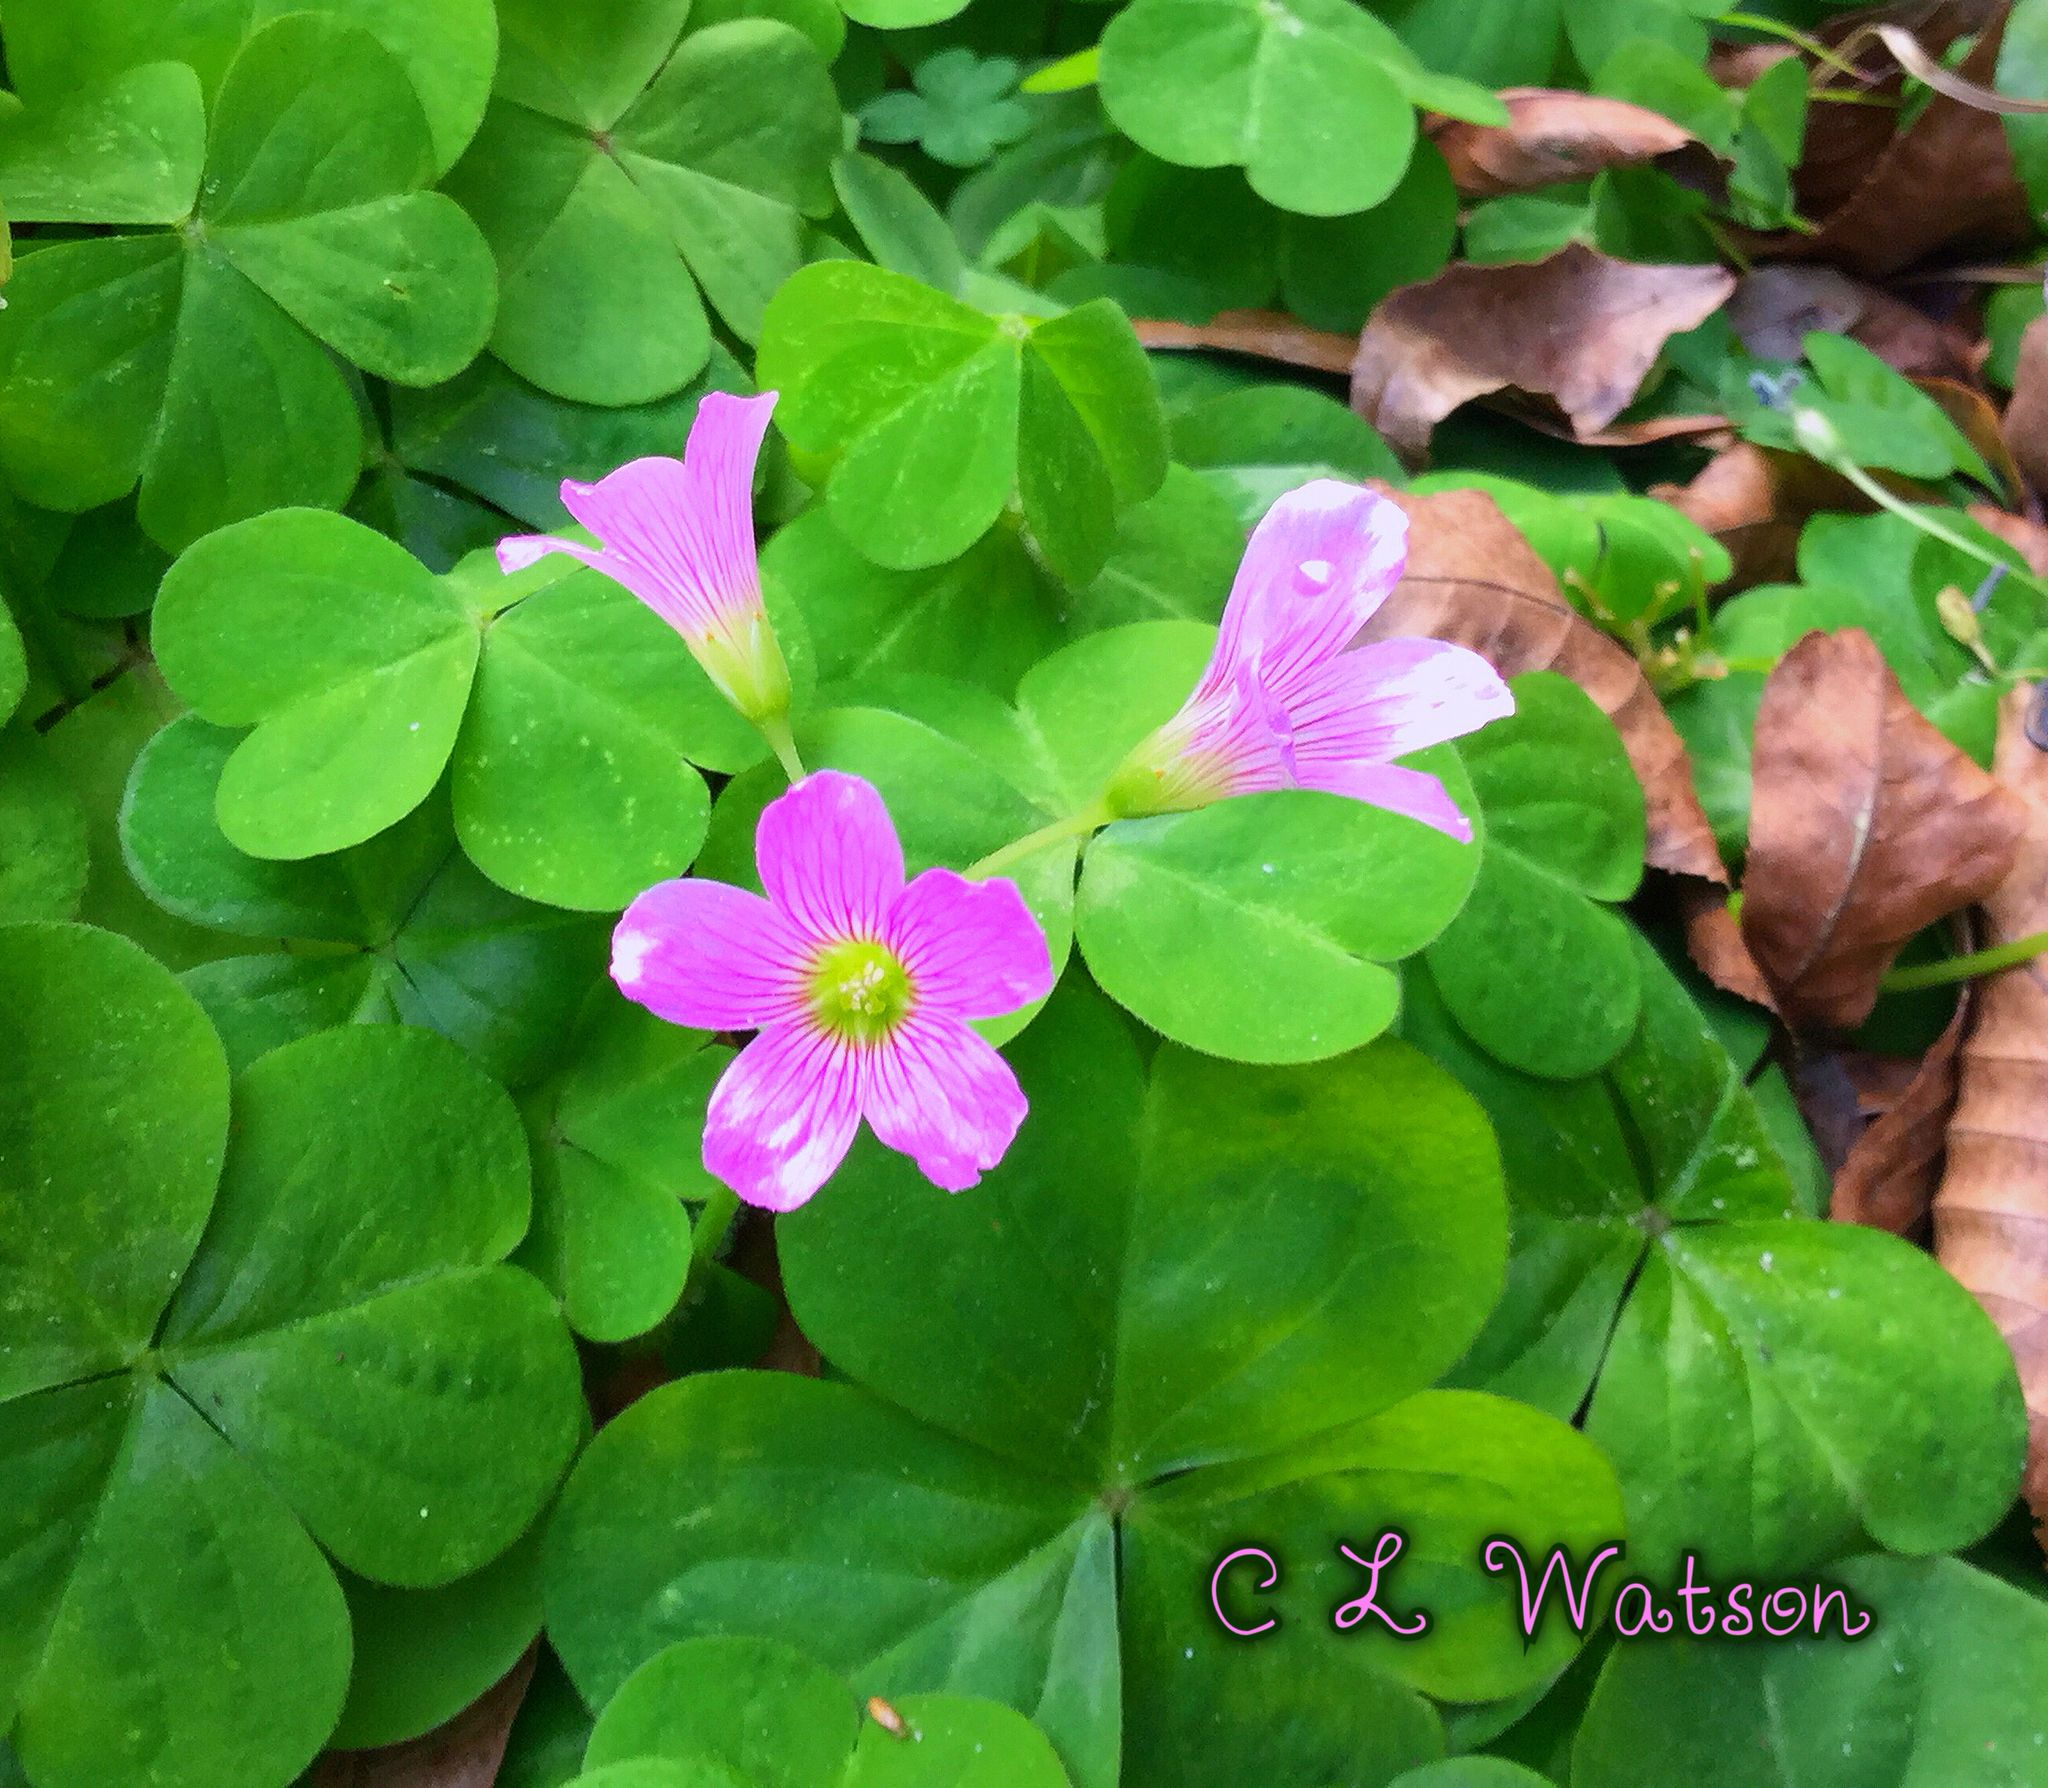 Delicate Purple Clover Flower Blooming Central Florida During